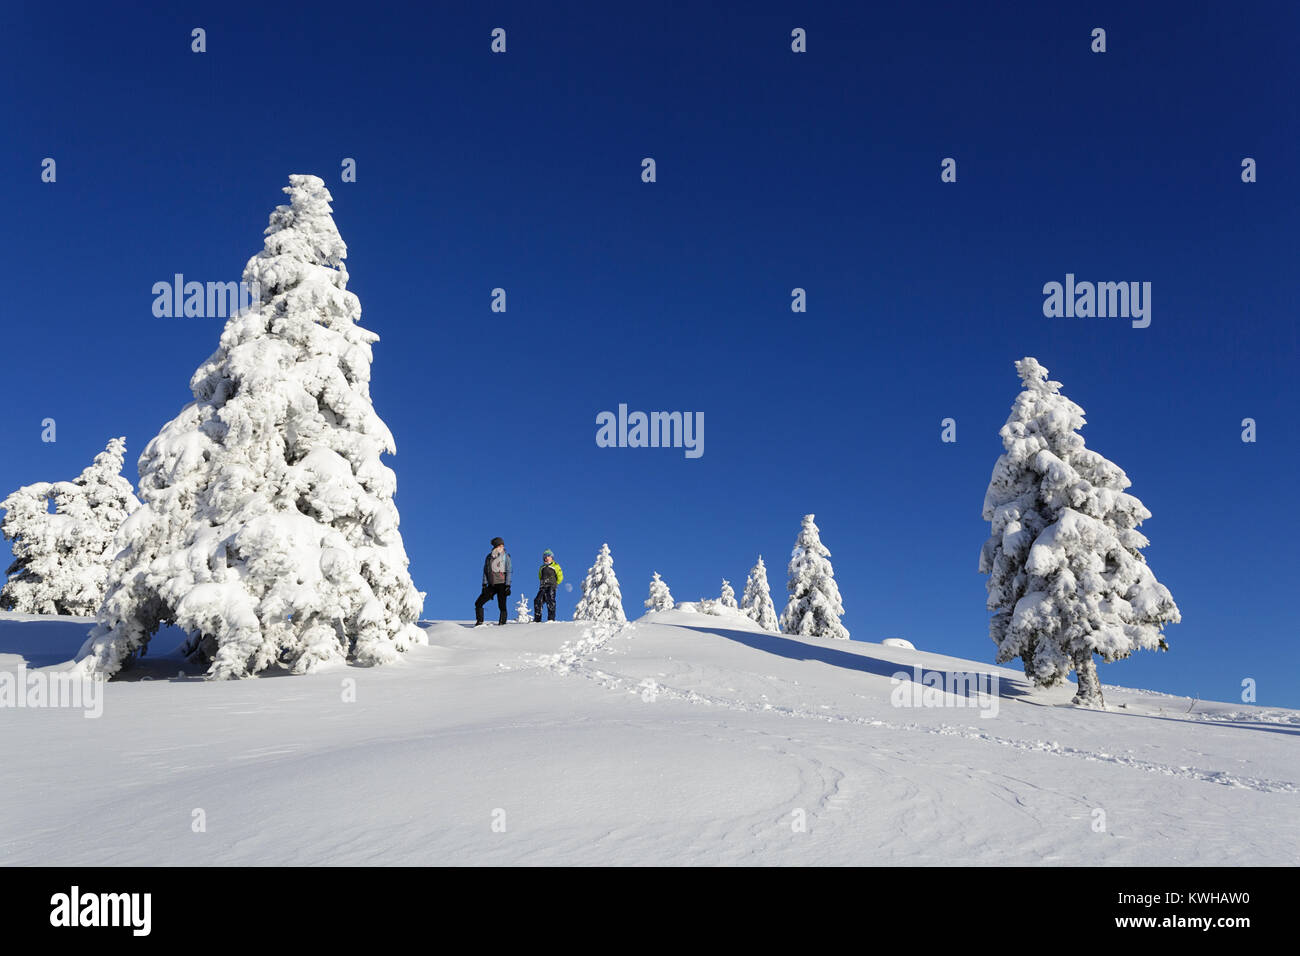 Mother and son hiking on the snow covered mountain between frozen spruces, Krvavec, Slovenia. - Stock Image